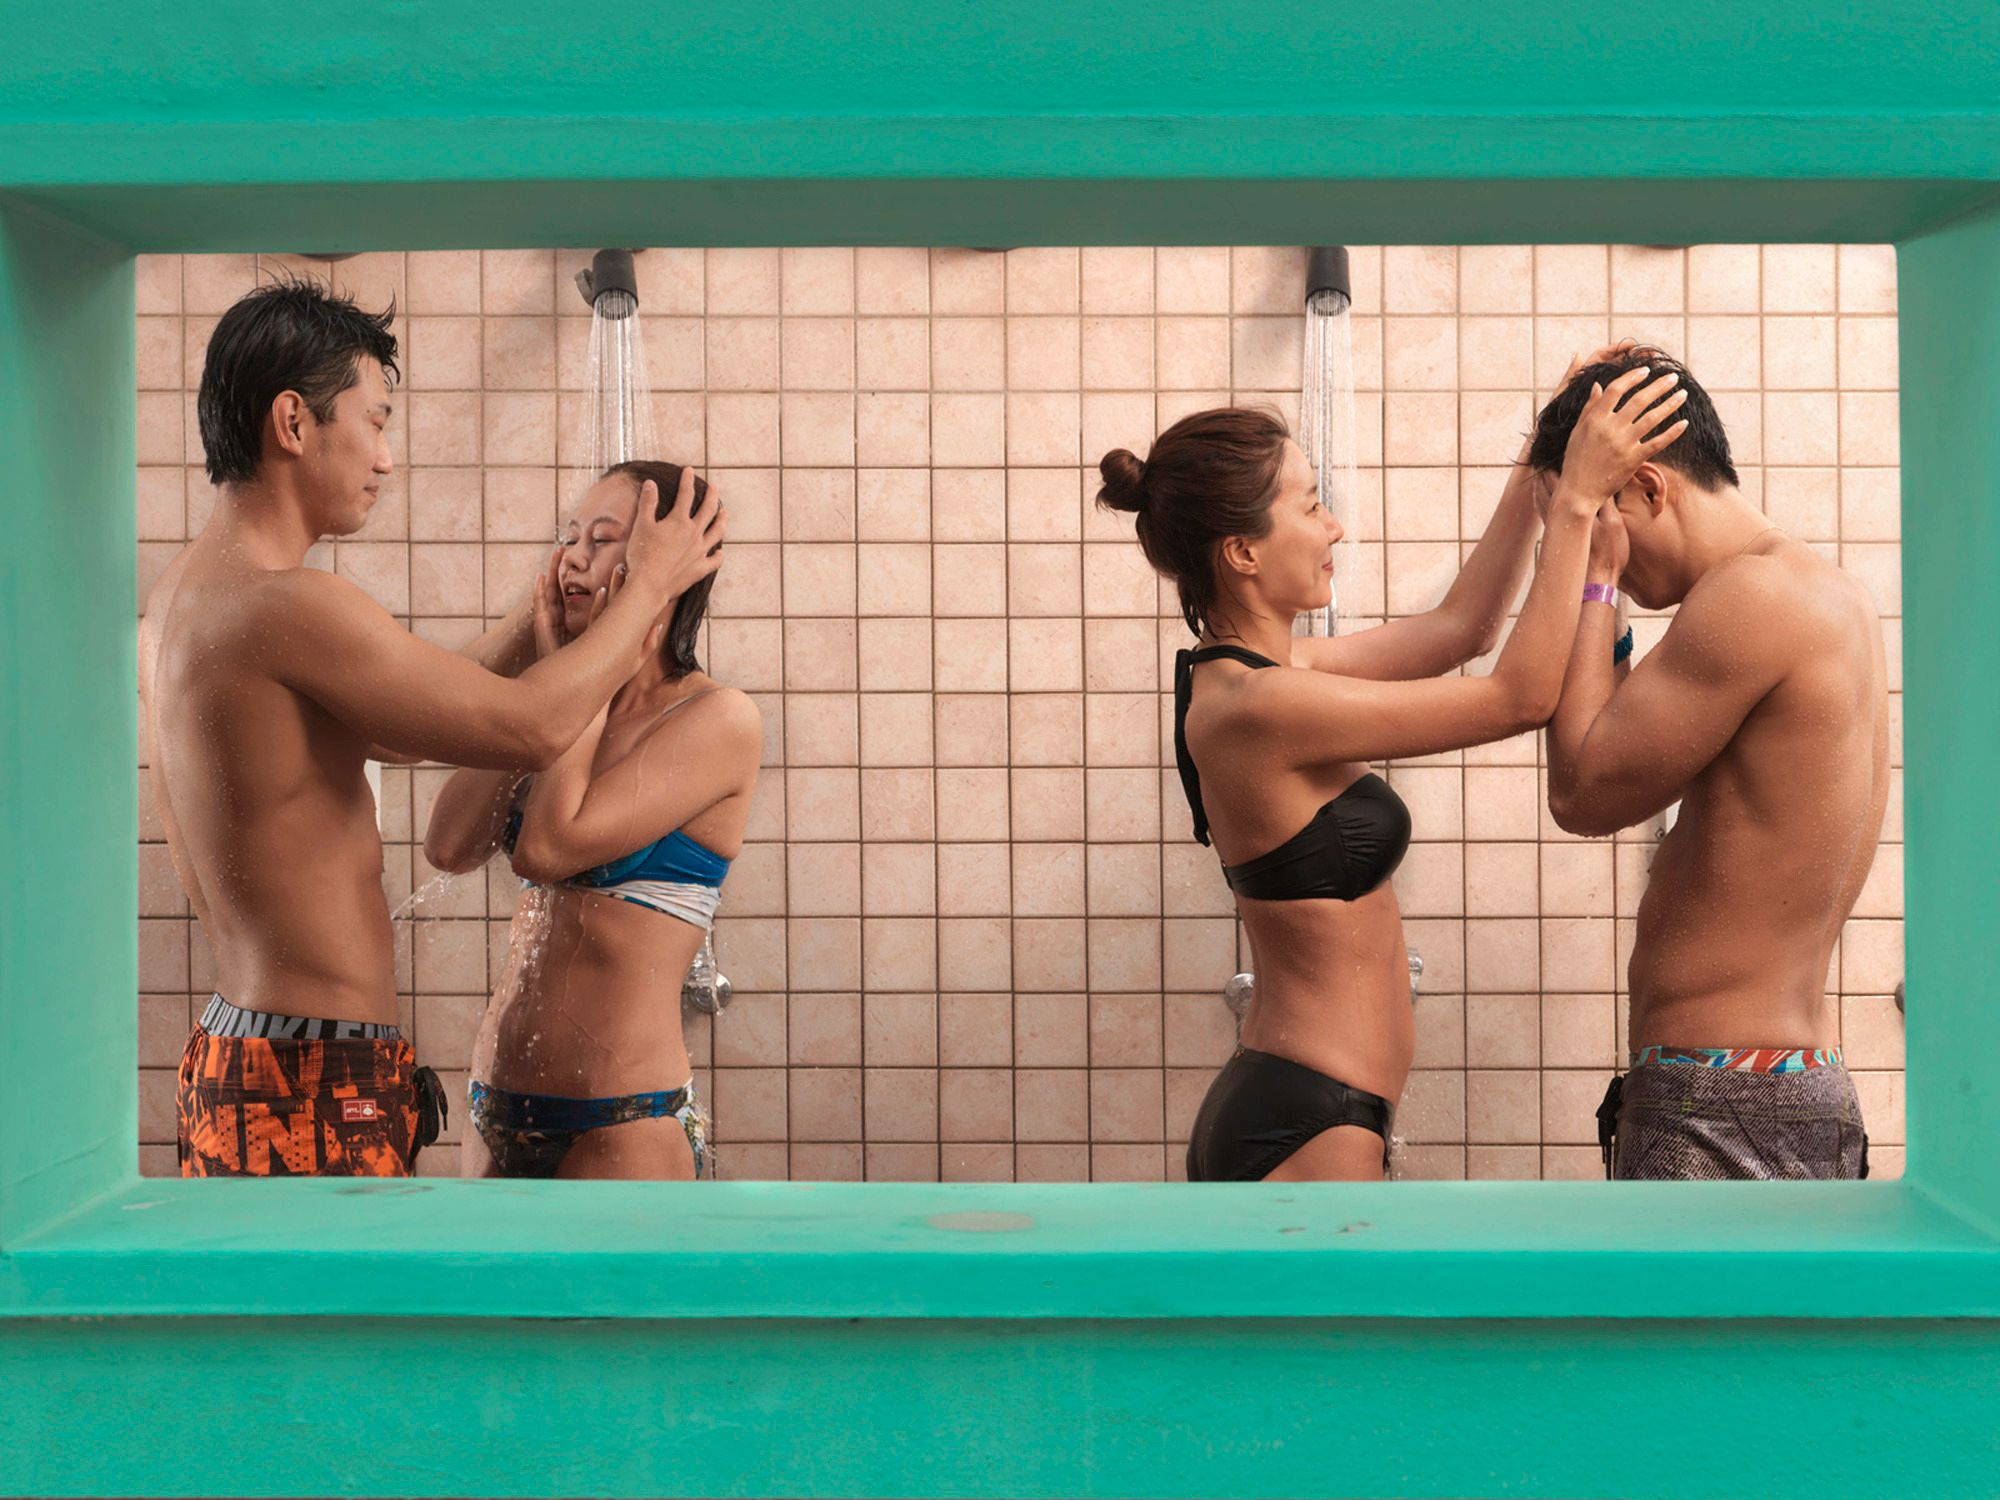 Everland is the largest theme park in Korea. This is the open shower in Caribbean Bay. Foto: Julia Fullerton-Batten, United Kingdom, Shortlist, Lifestyle, Professional Competition, 2015 Sony World Photography Awards